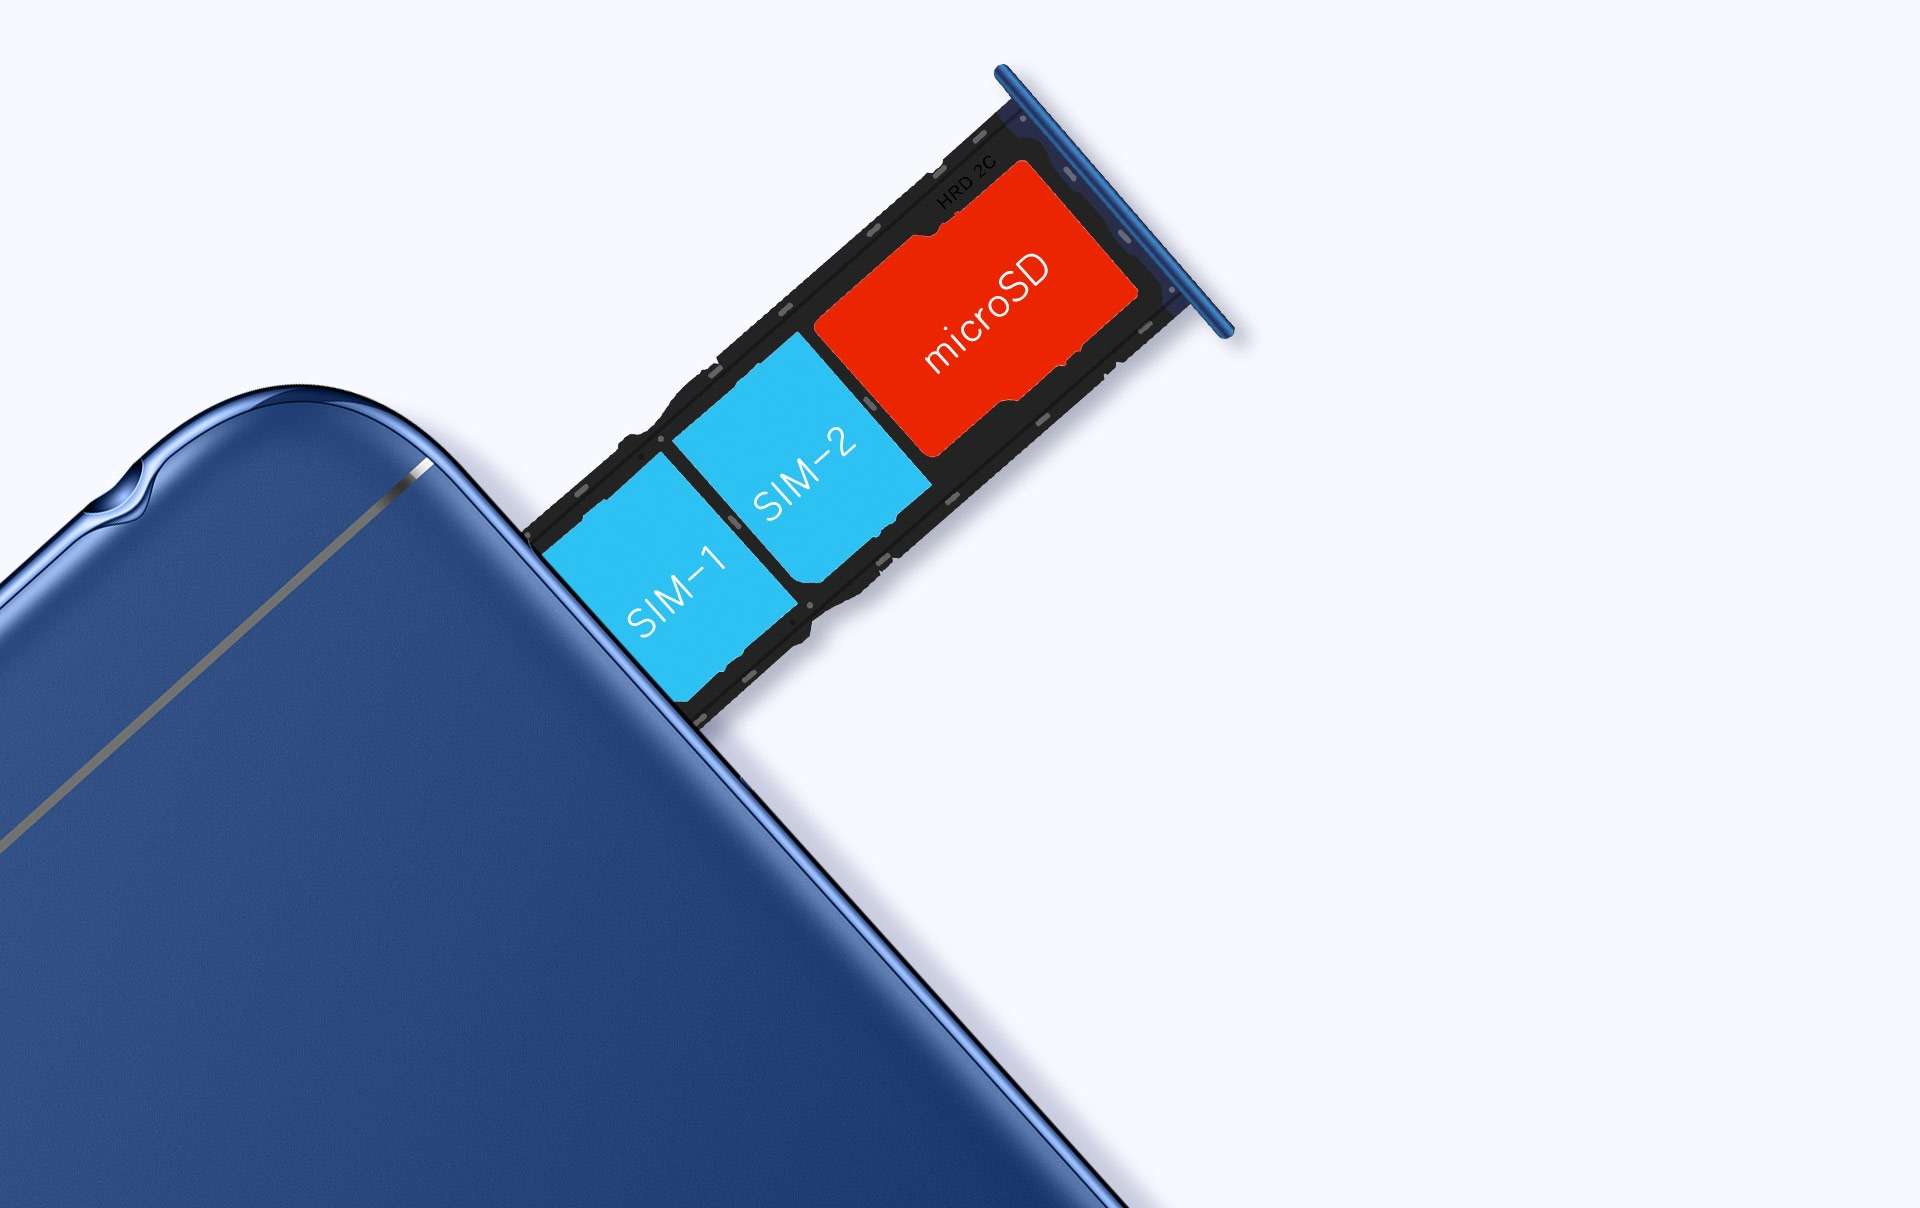 Honor 7A & Honor 7C launched in India - Here's all you need to know 7